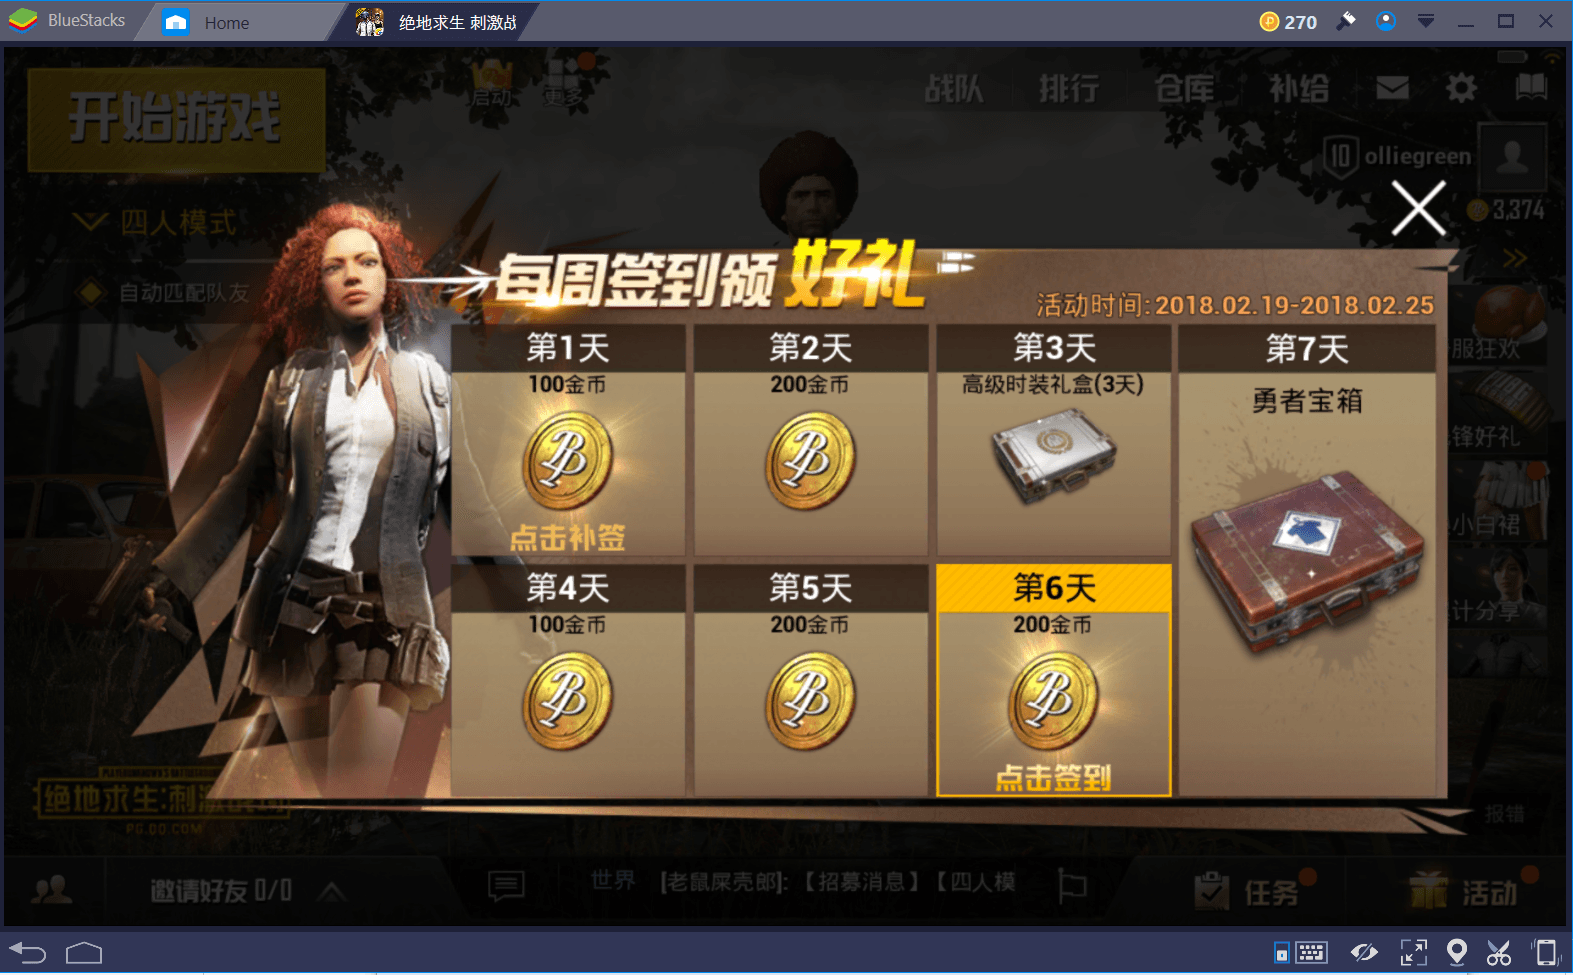 How To Increase Fps In Pubg Mobile For Better Gameplay: Top Gameplay Differences Between PUBG Mobile And PUBG